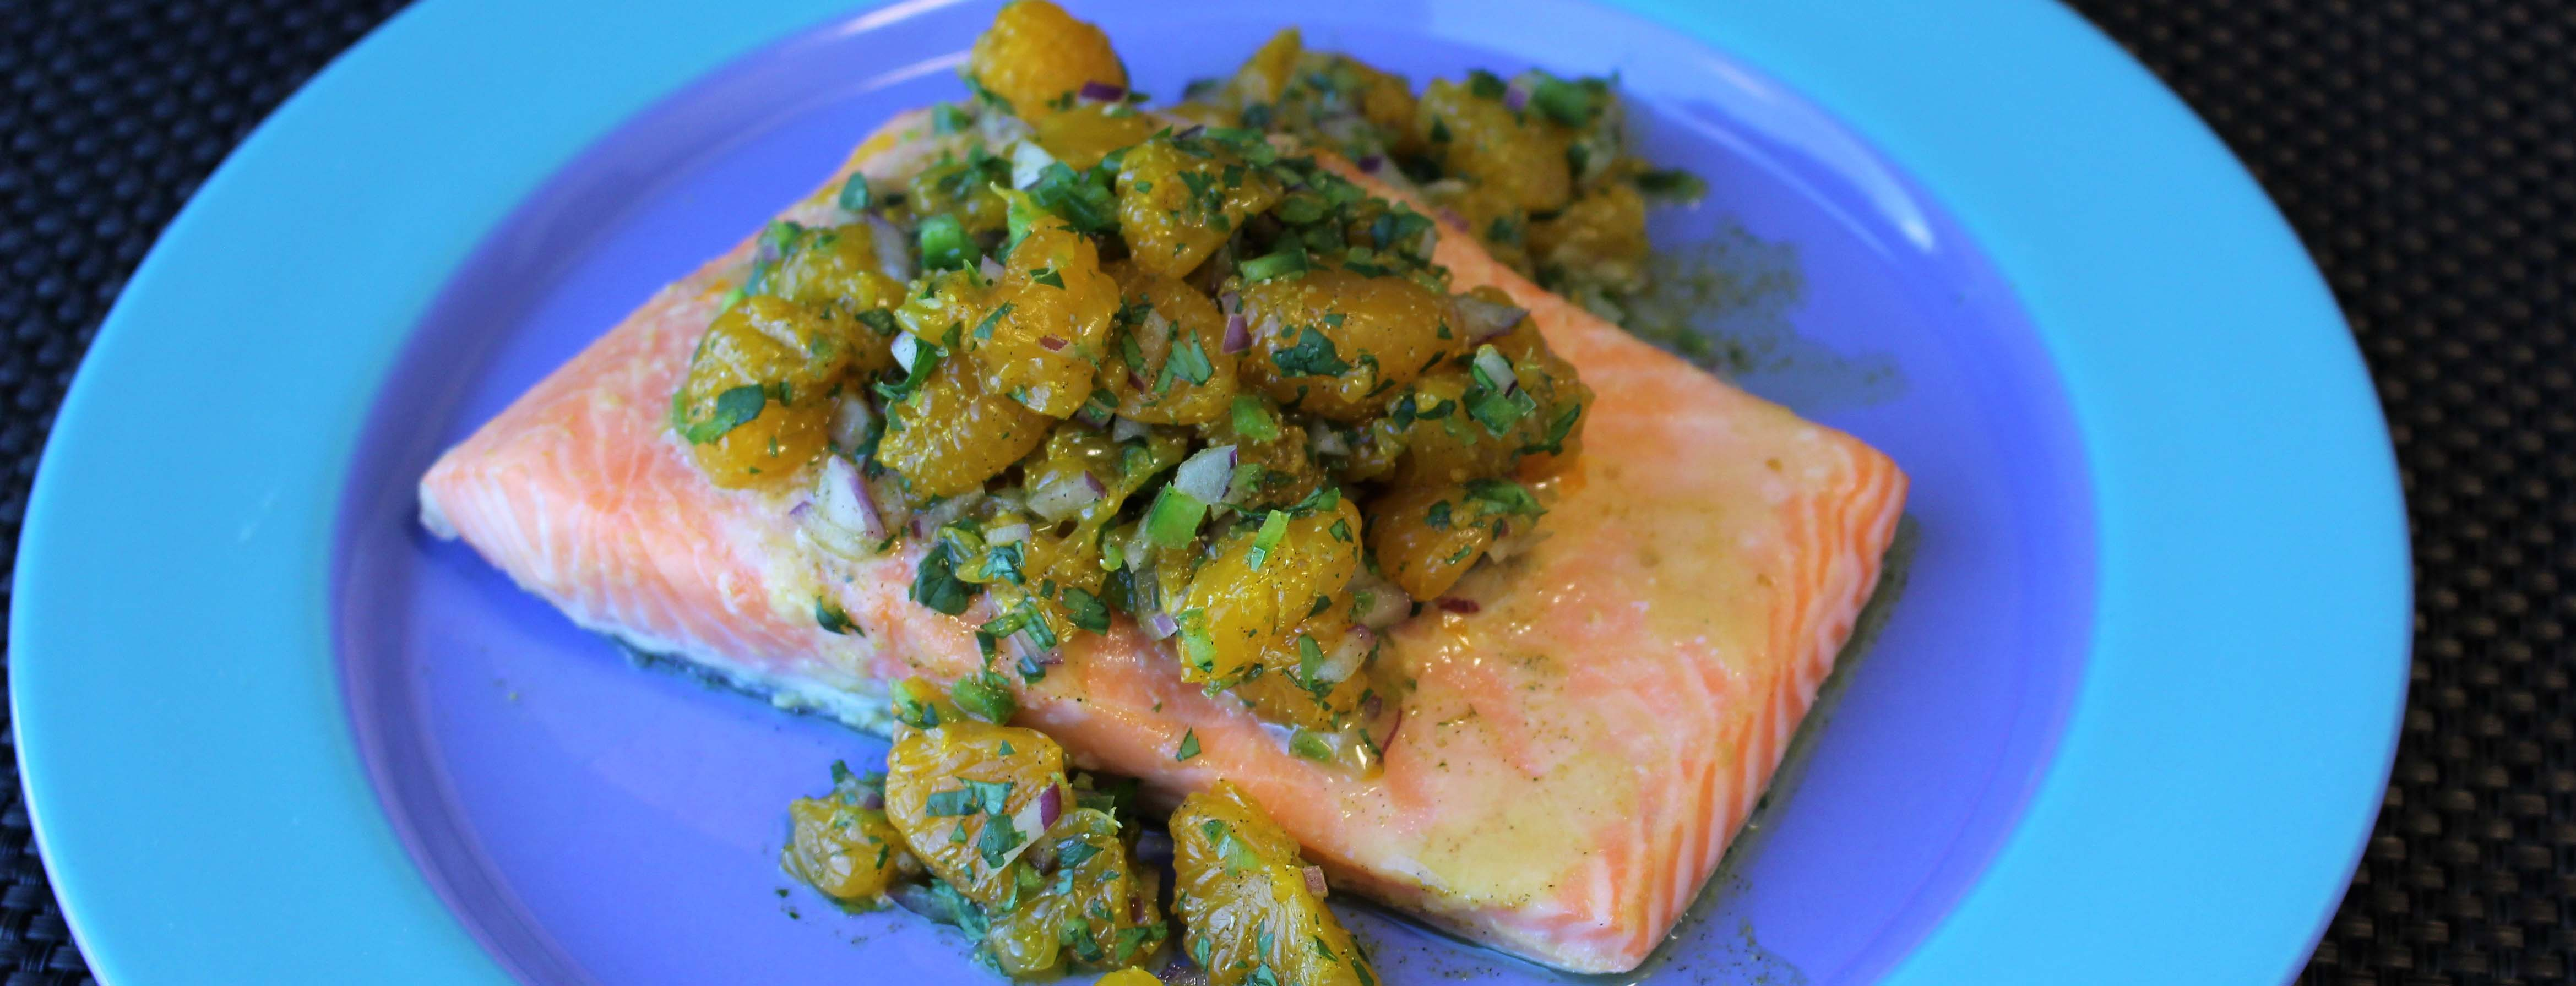 Photo of Miso Glazed Salmon Topped with Mandarin Orange Salsa